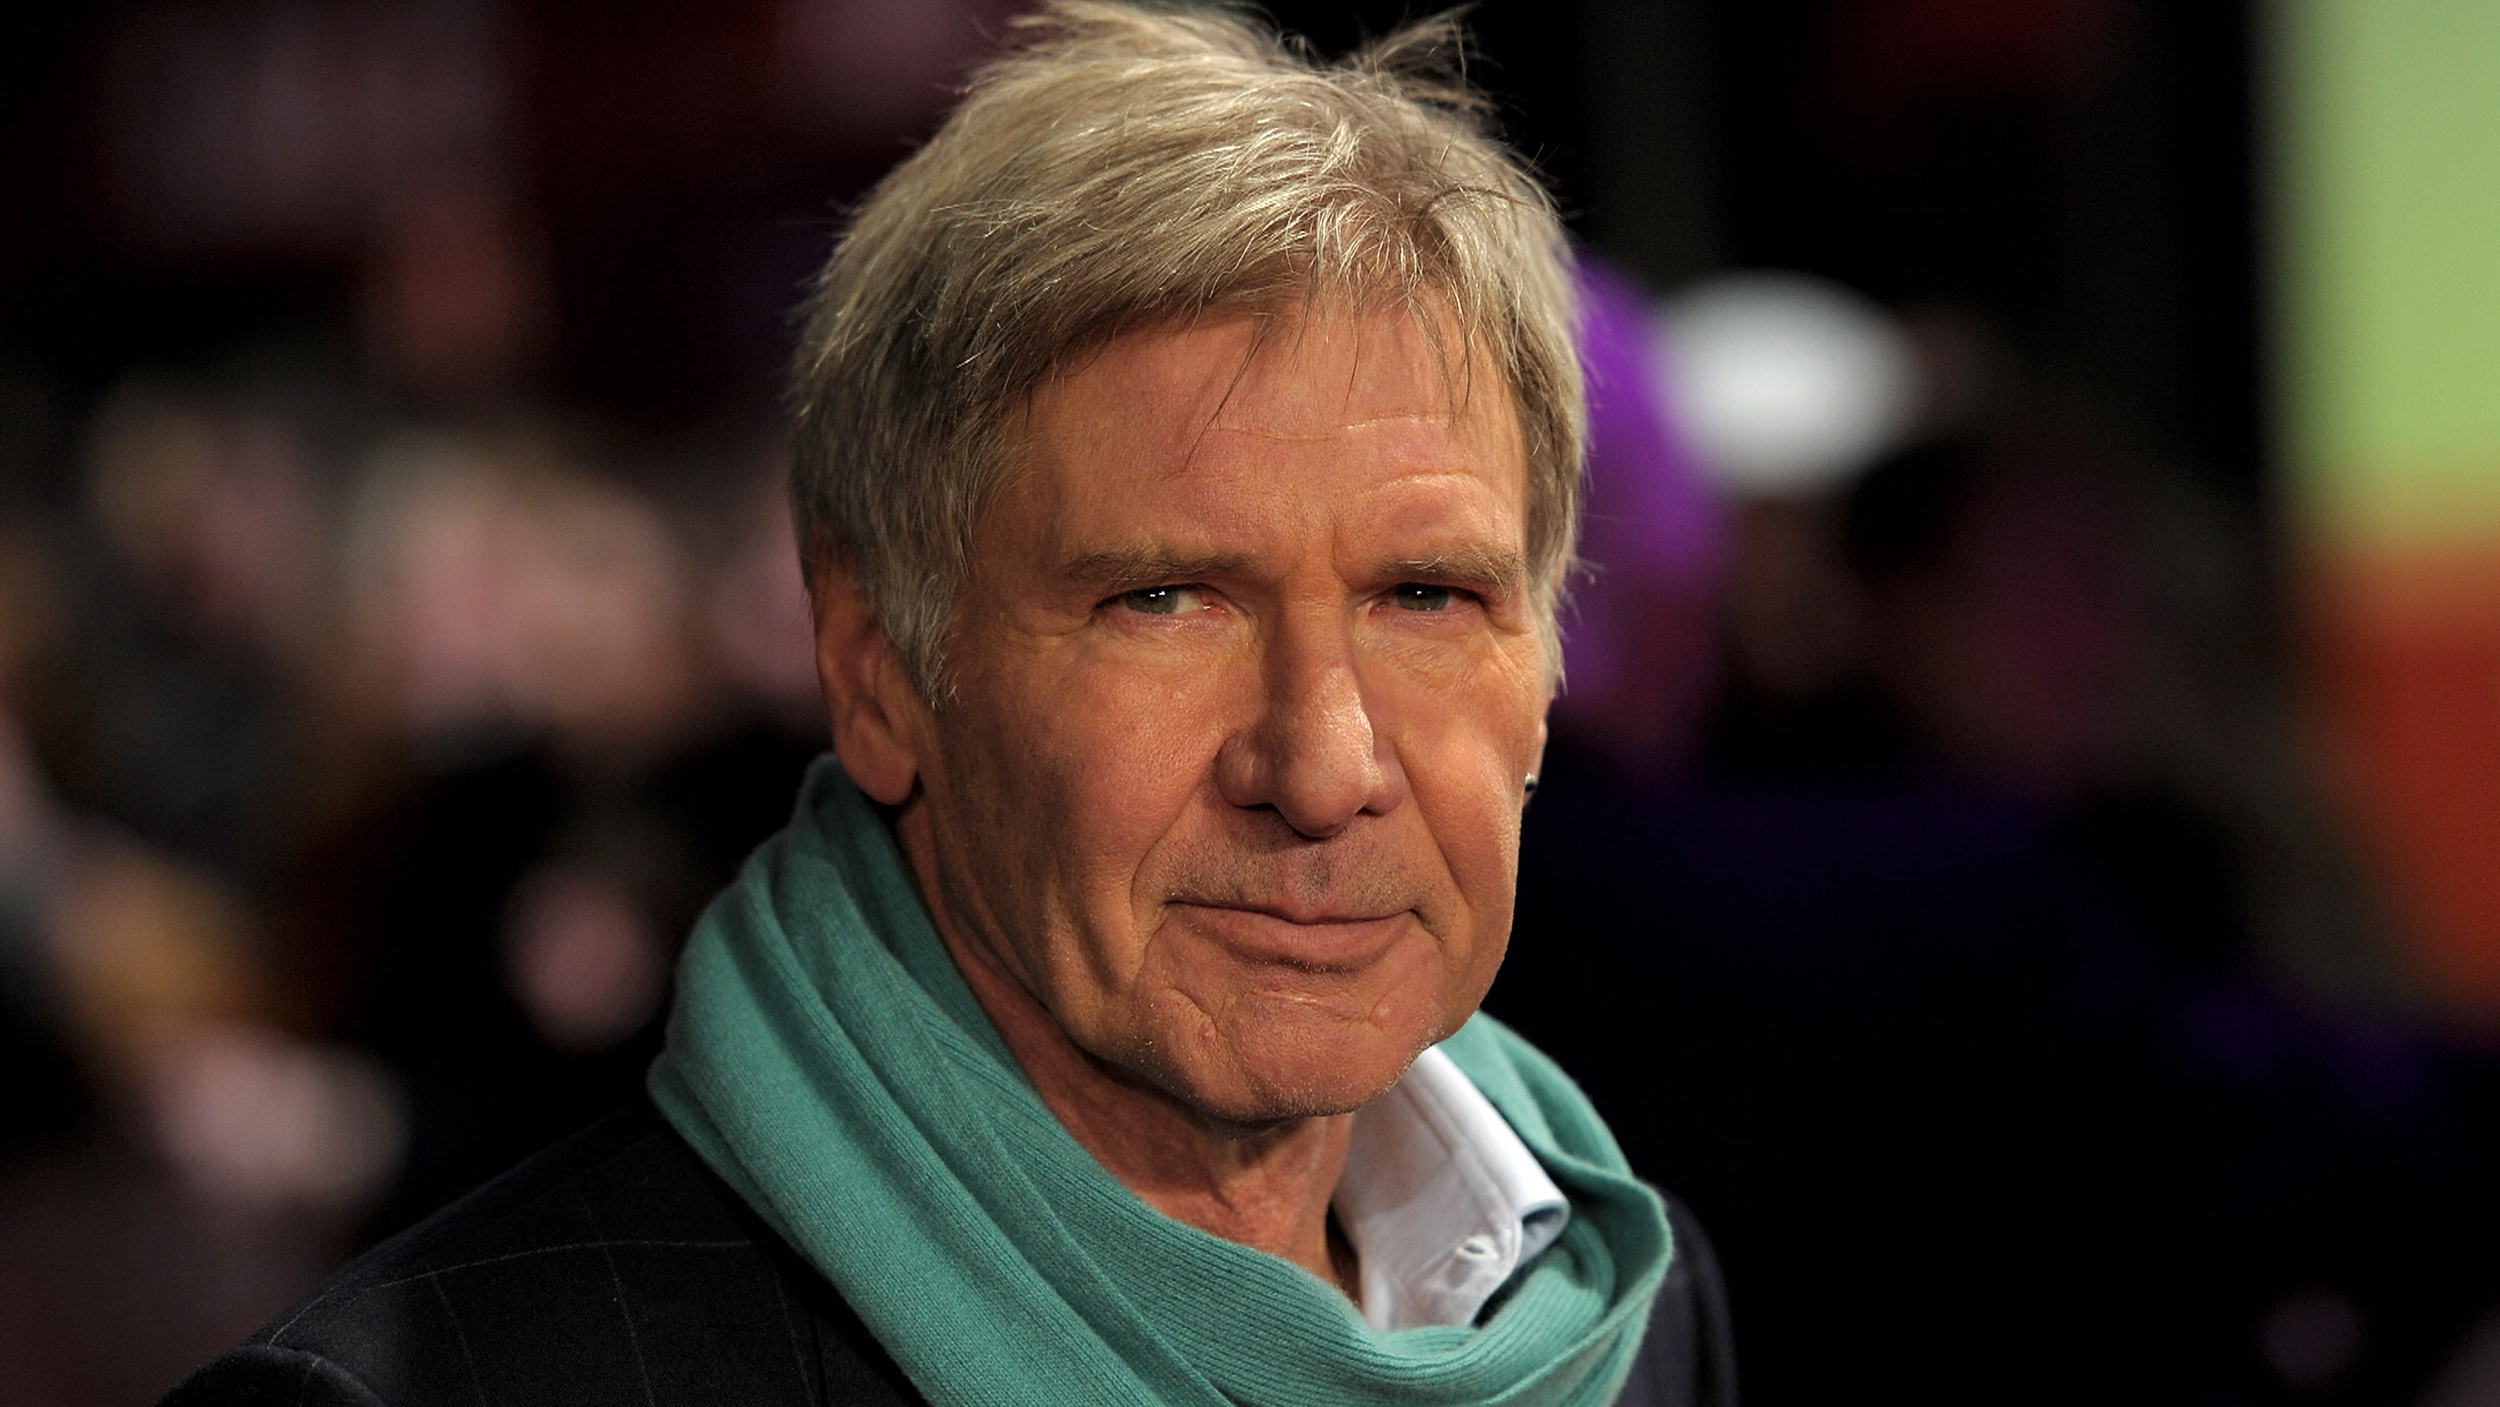 Harrison Ford Backgrounds on Wallpapers Vista